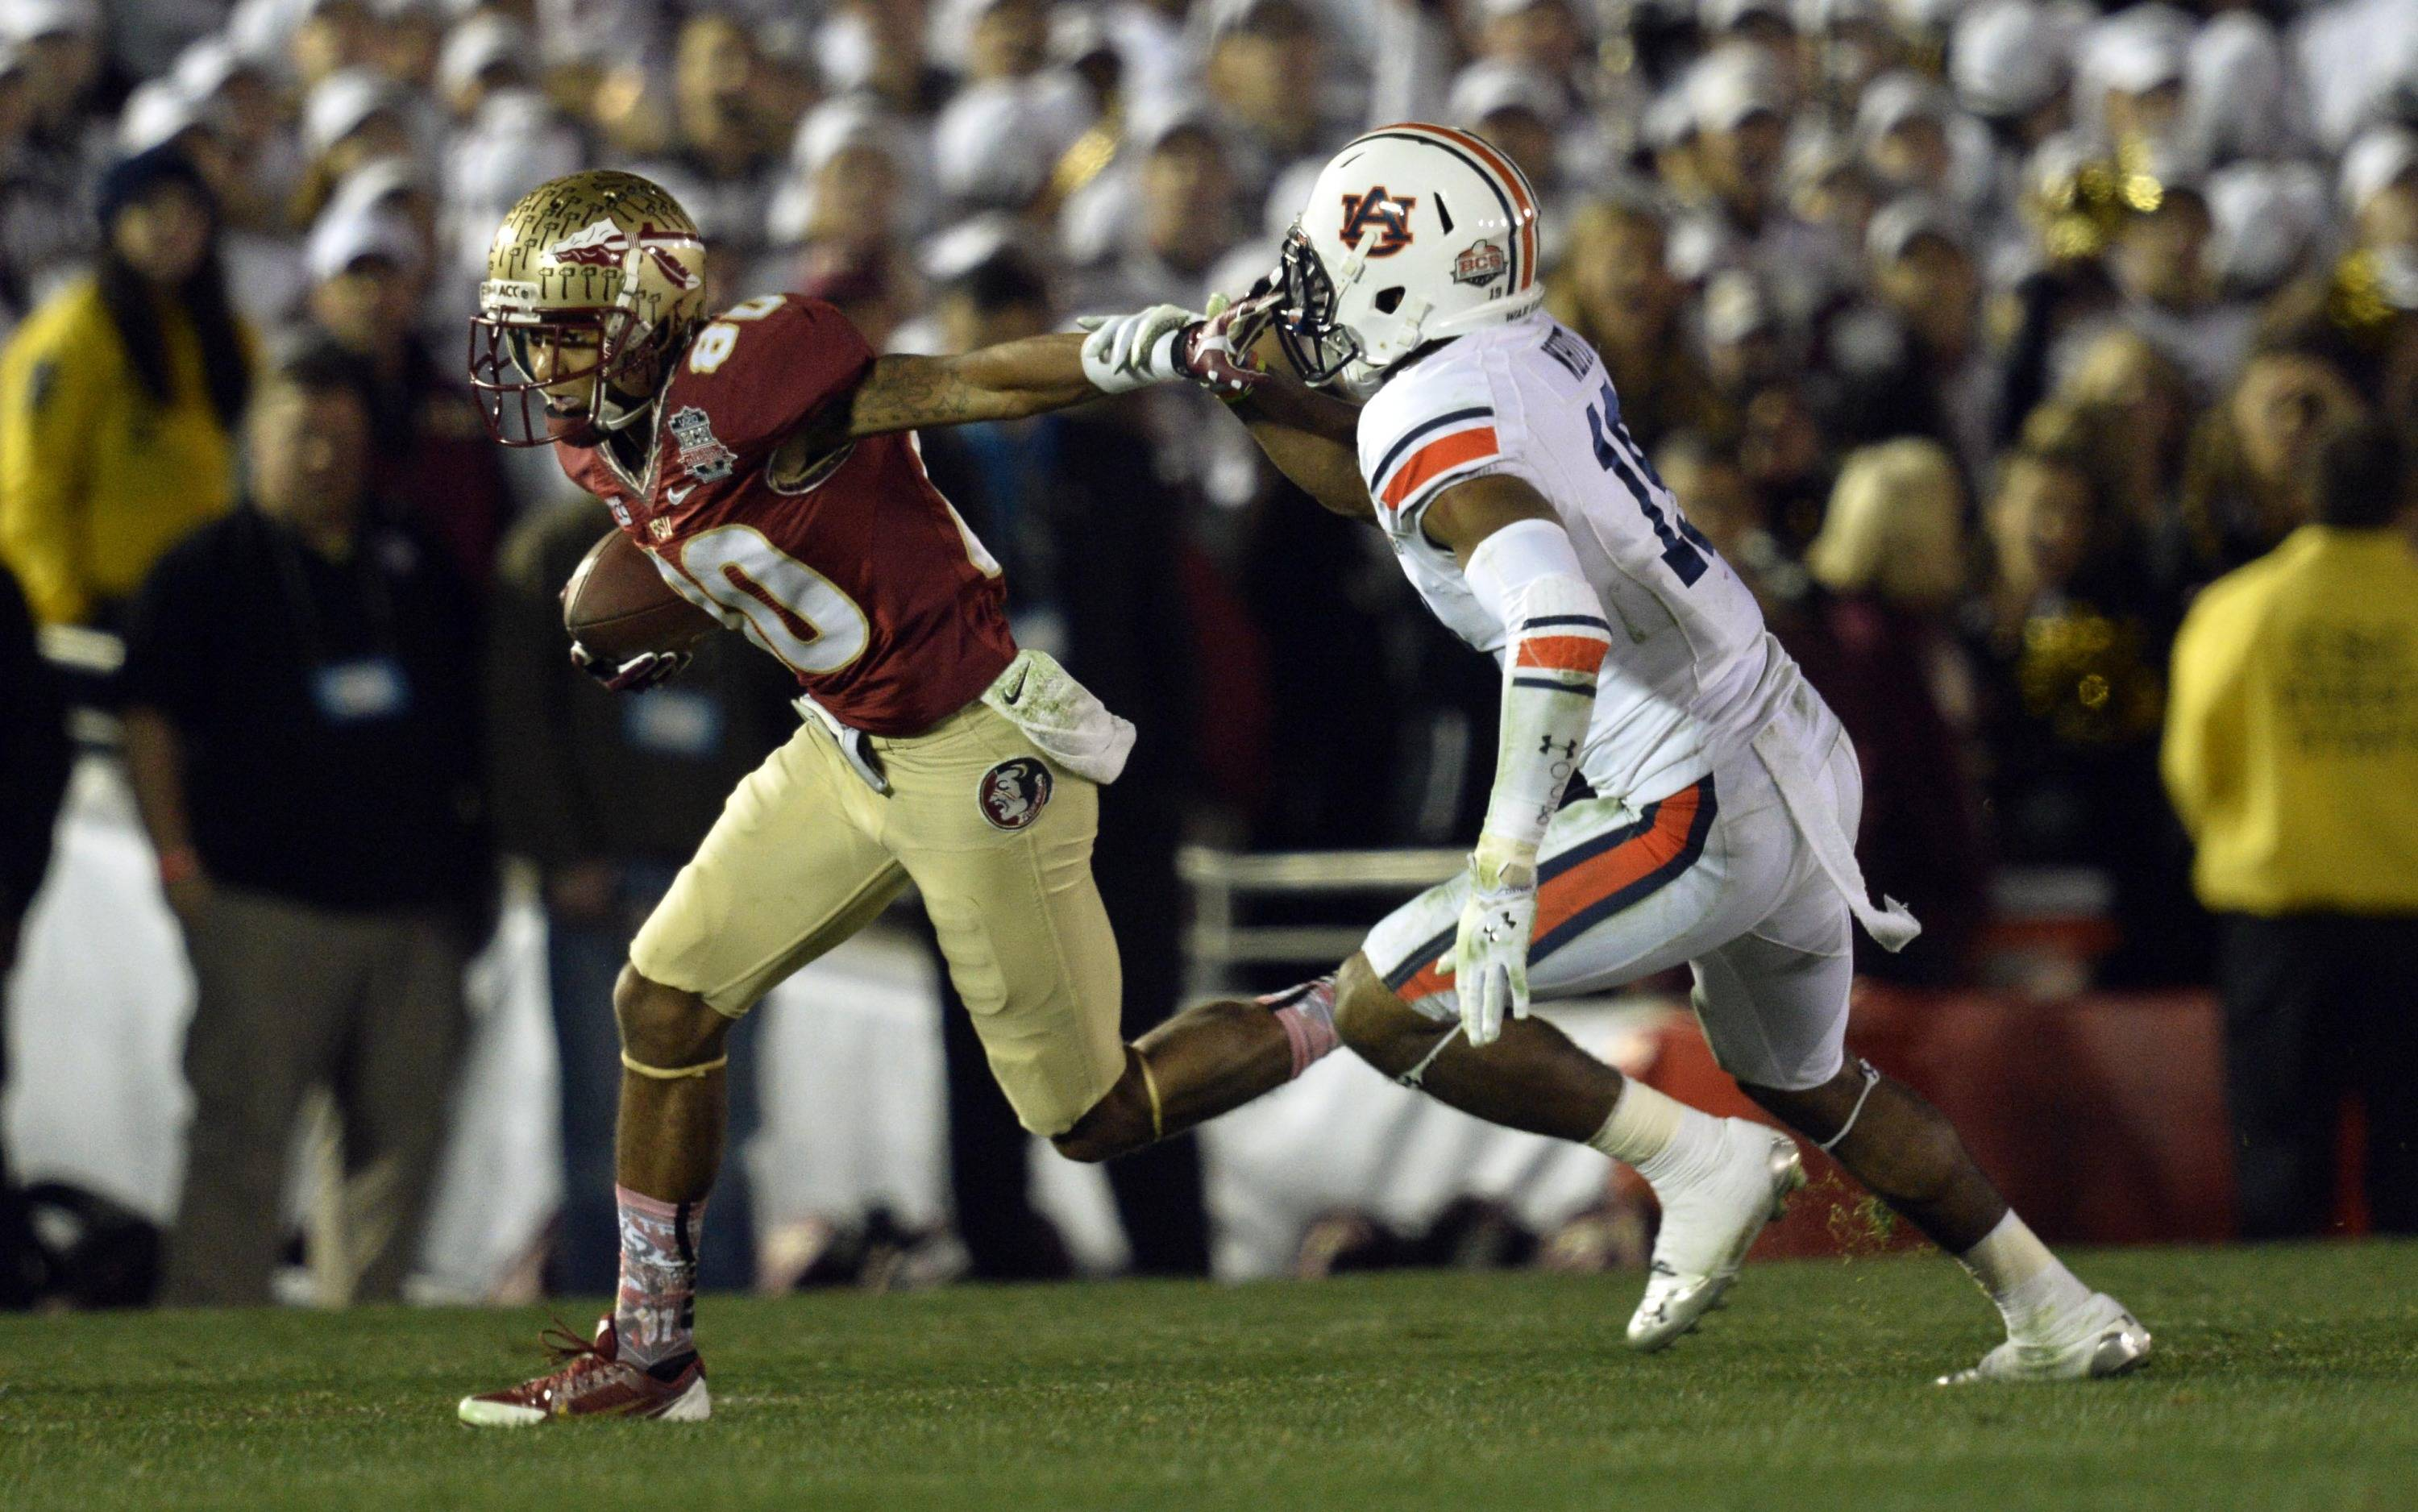 Jan 6, 2014; Pasadena, CA, USA; Florida State Seminoles wide receiver Rashad Greene (80) tries to get past Auburn Tigers defensive back Ryan White (19) during the second half of the 2014 BCS National Championship game at the Rose Bowl.  Mandatory Credit: Robert Hanashiro-USA TODAY Sports